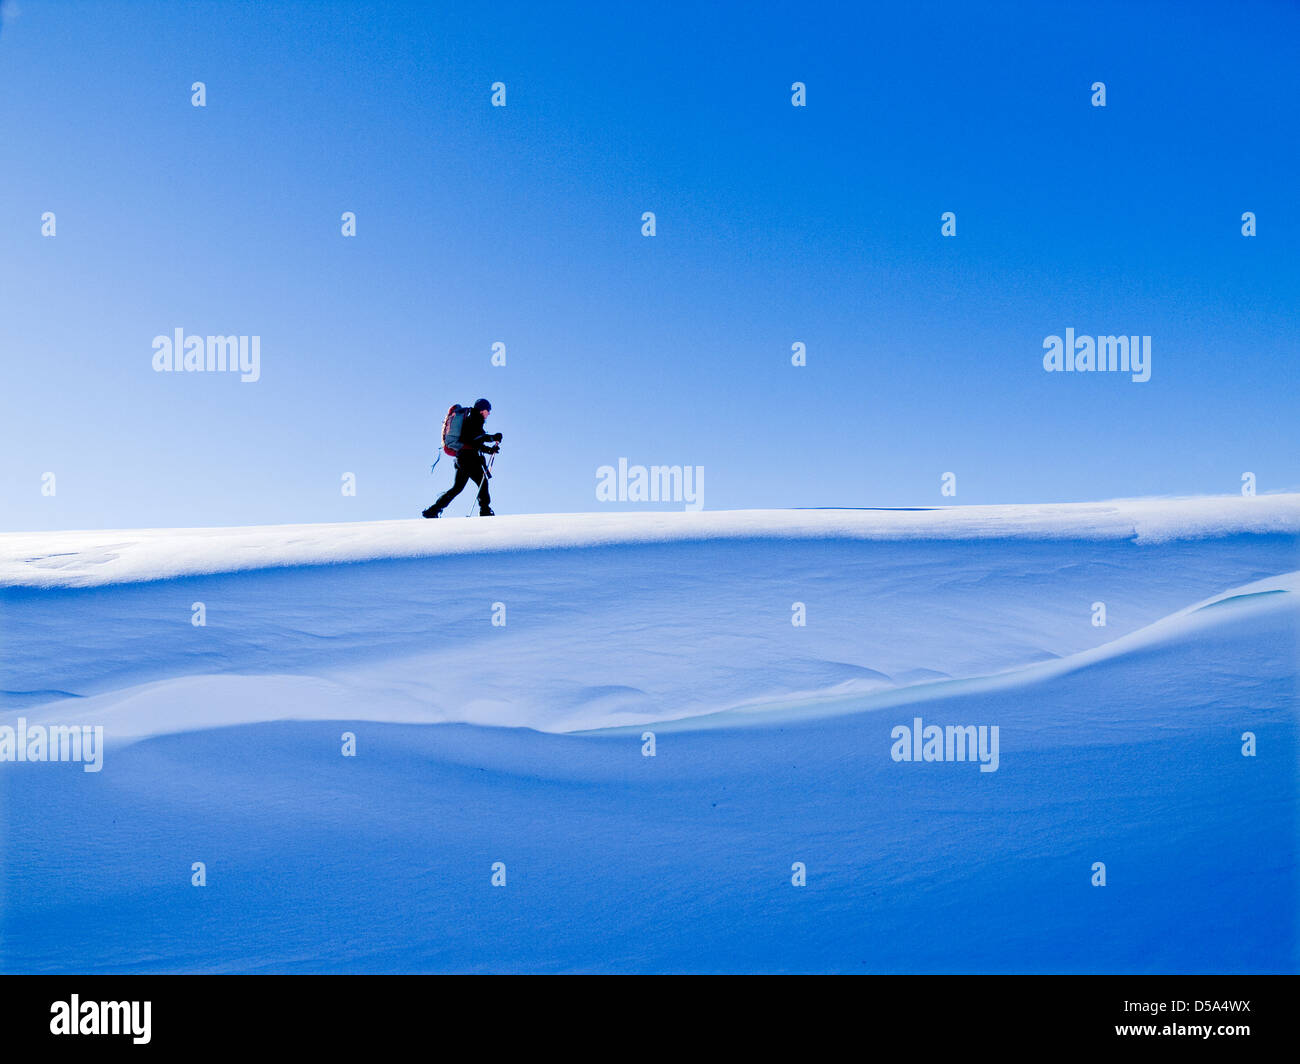 Ski touring in Northern Norway along a cornice of snow - Stock Image